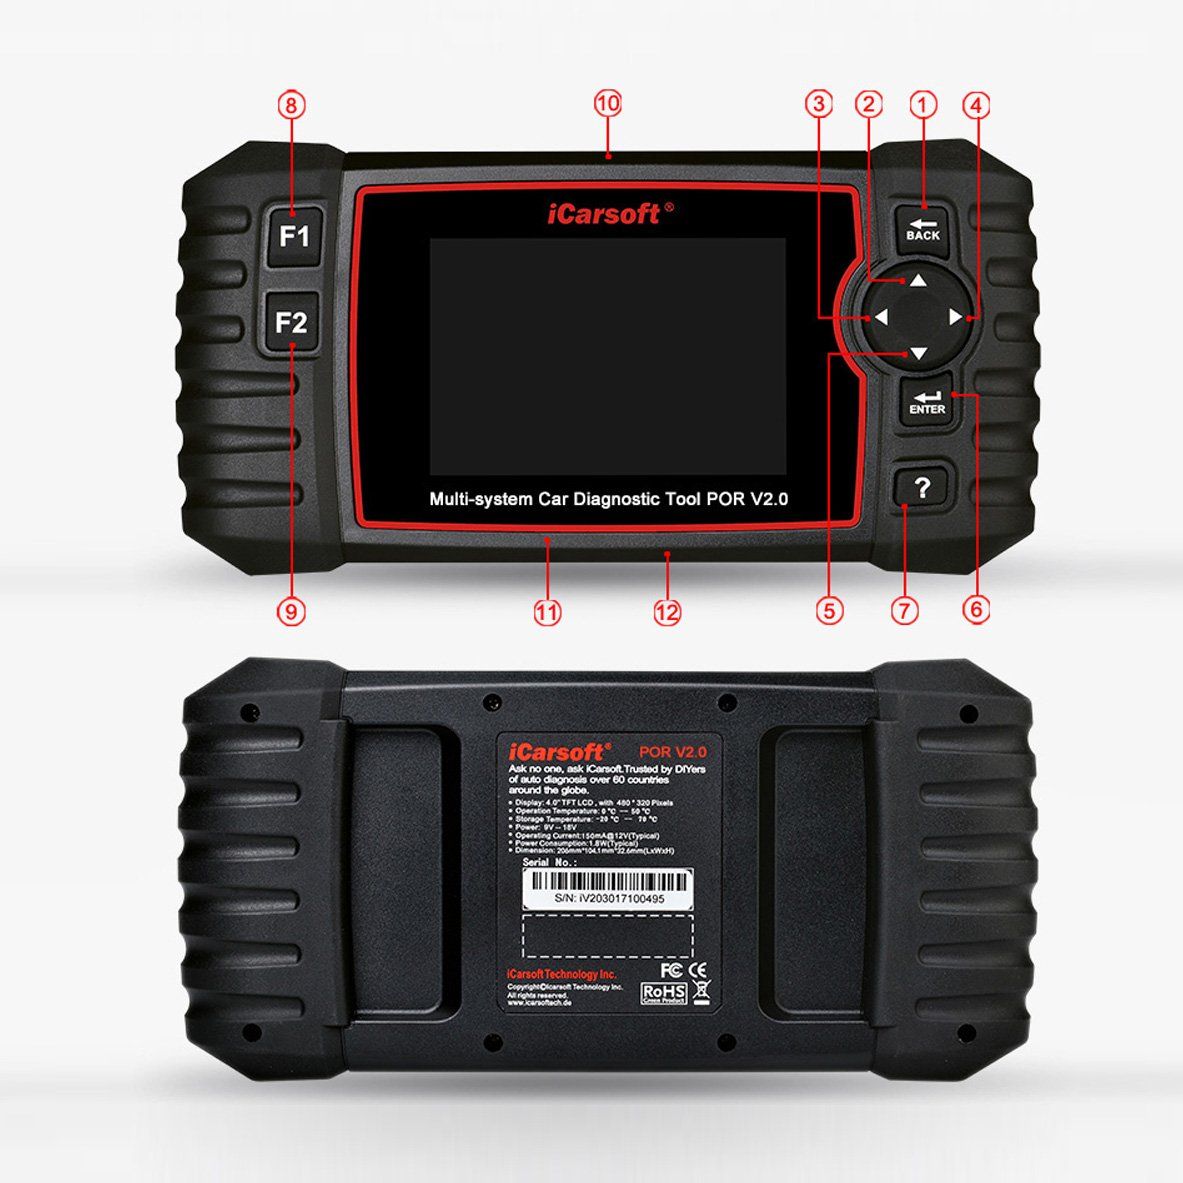 iCarsoft Auto Diagnostic Scanner POR V2.0 for Porsche with ABS Scan,Oil Service Reset ect by iCarsoft (Image #5)